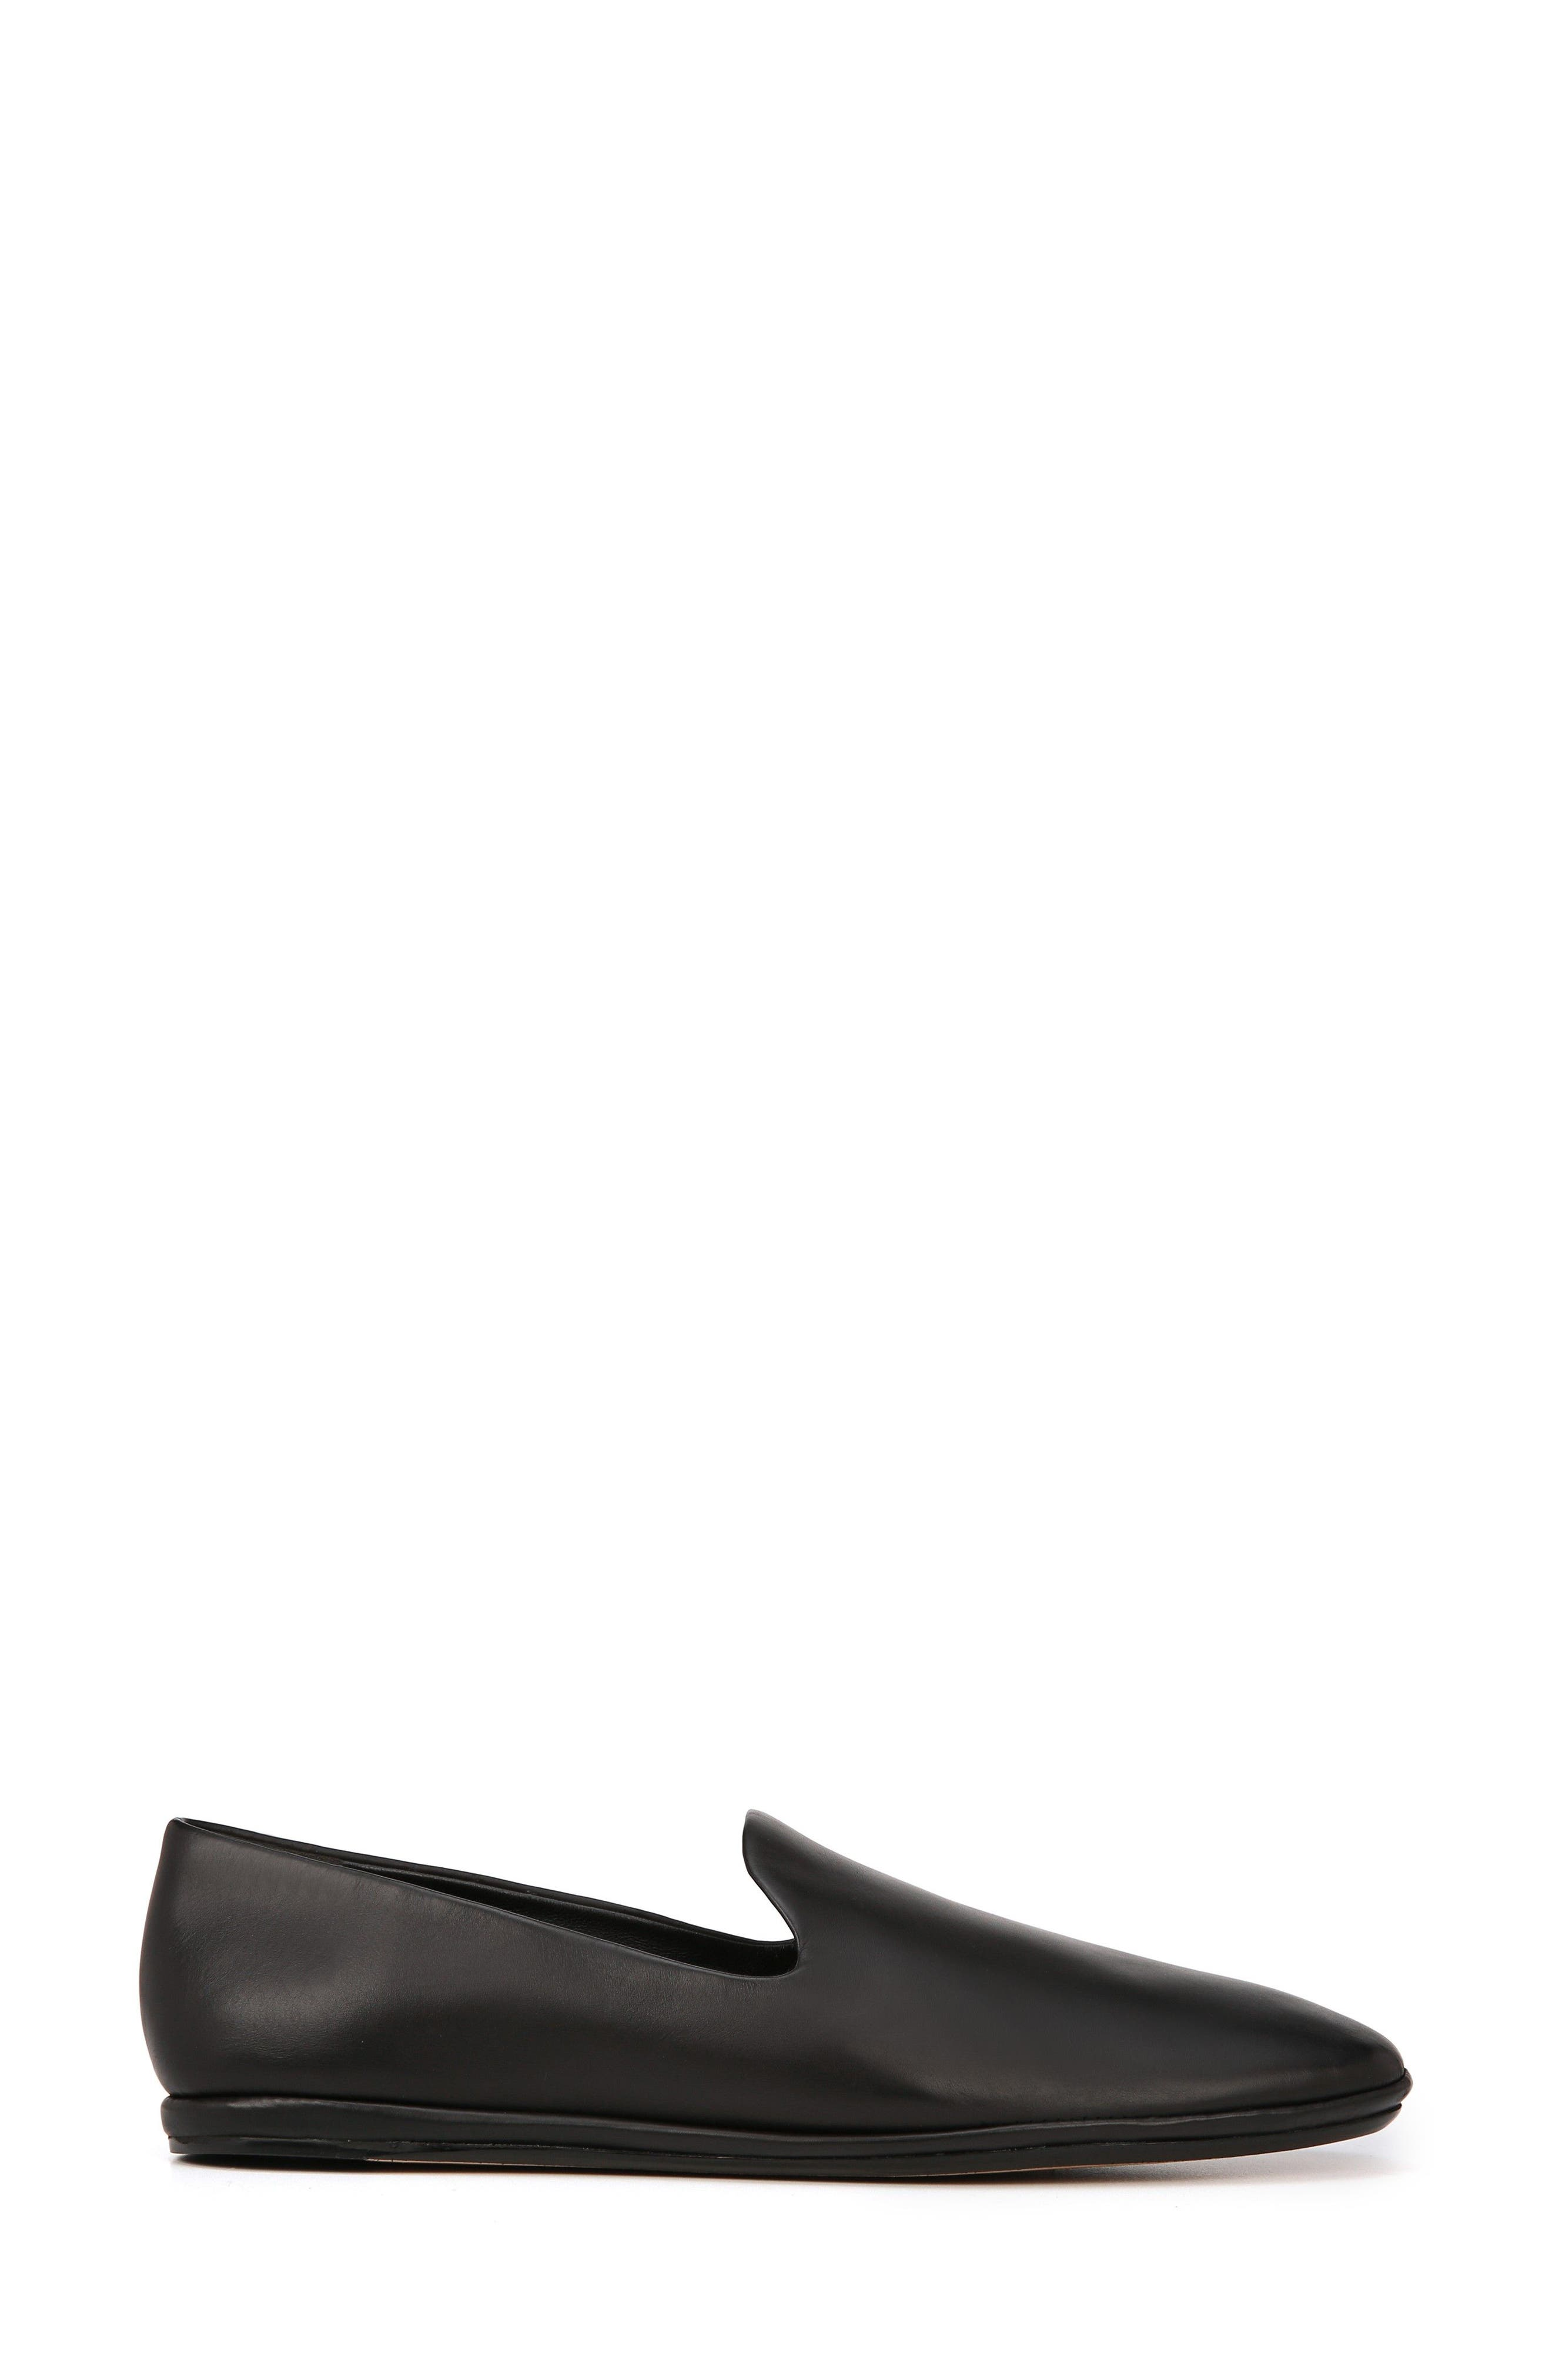 Paz Venetian Loafer,                             Alternate thumbnail 3, color,                             BLACK